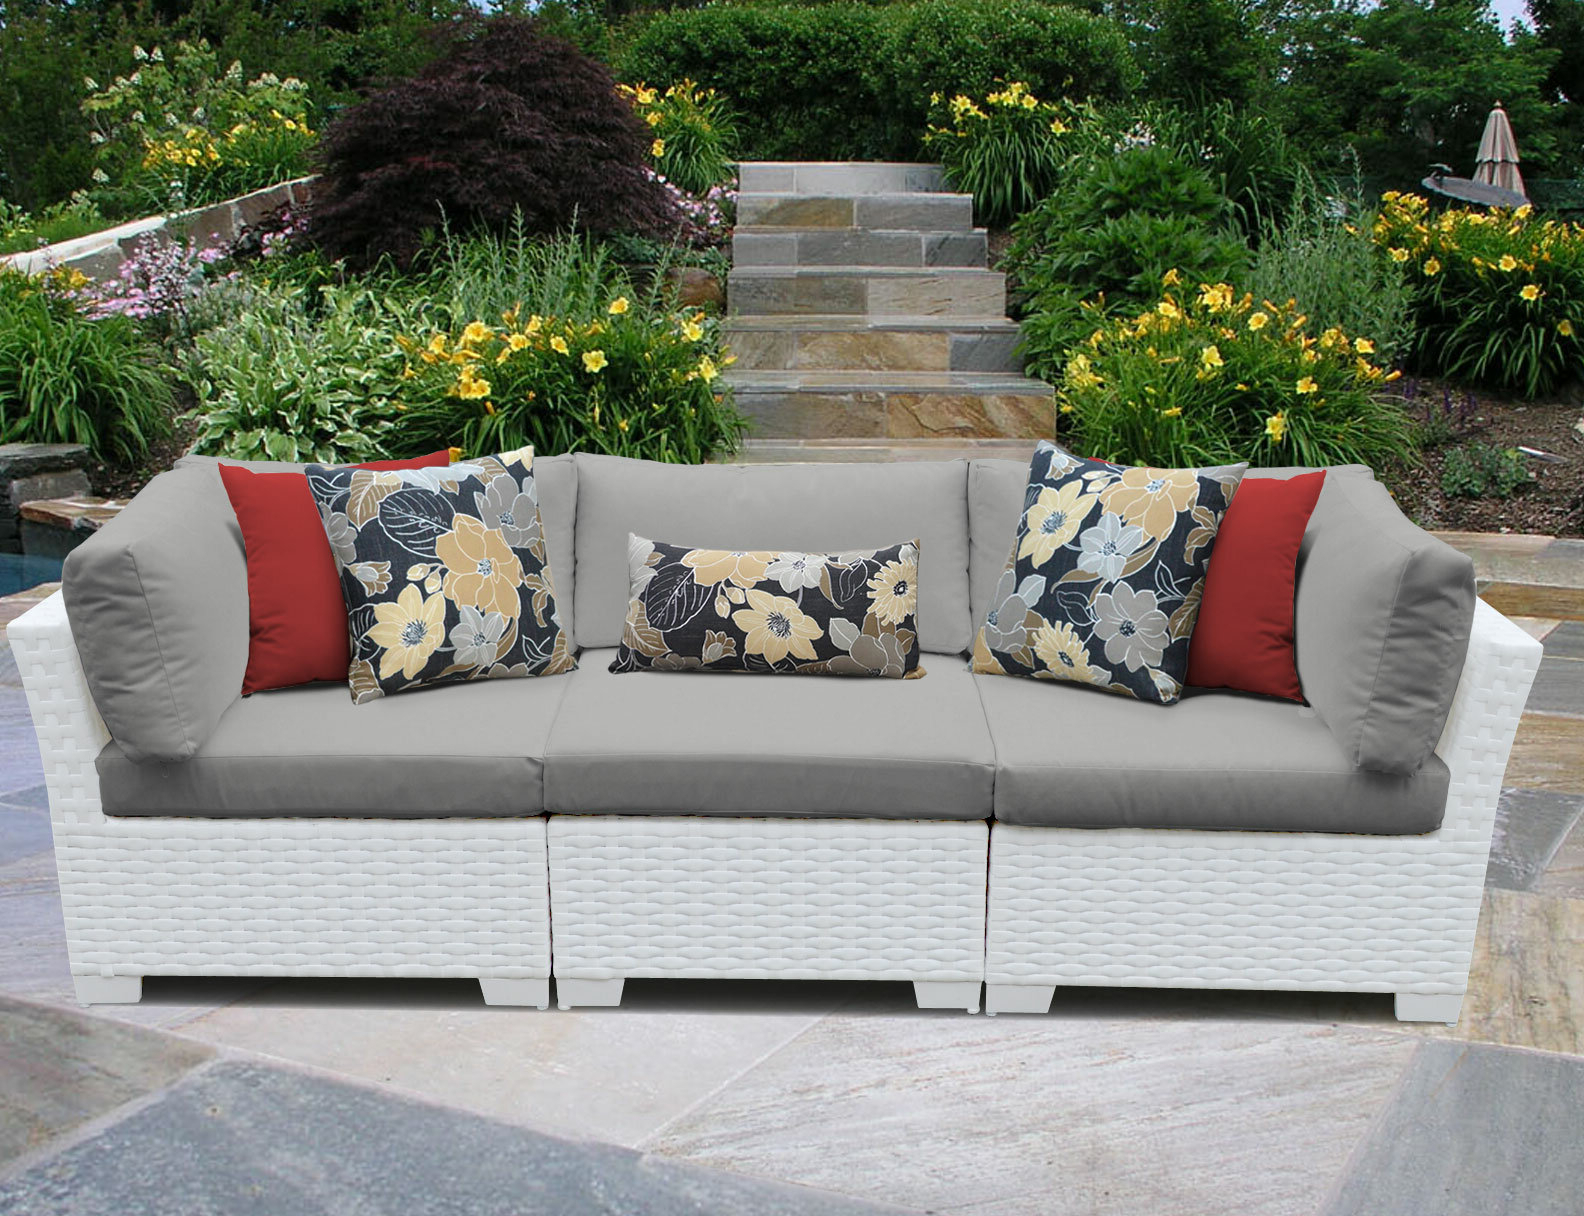 Carlisle Patio Sofas With Cushions With Regard To Well Known Monaco Patio Sofa With Cushions (View 11 of 25)